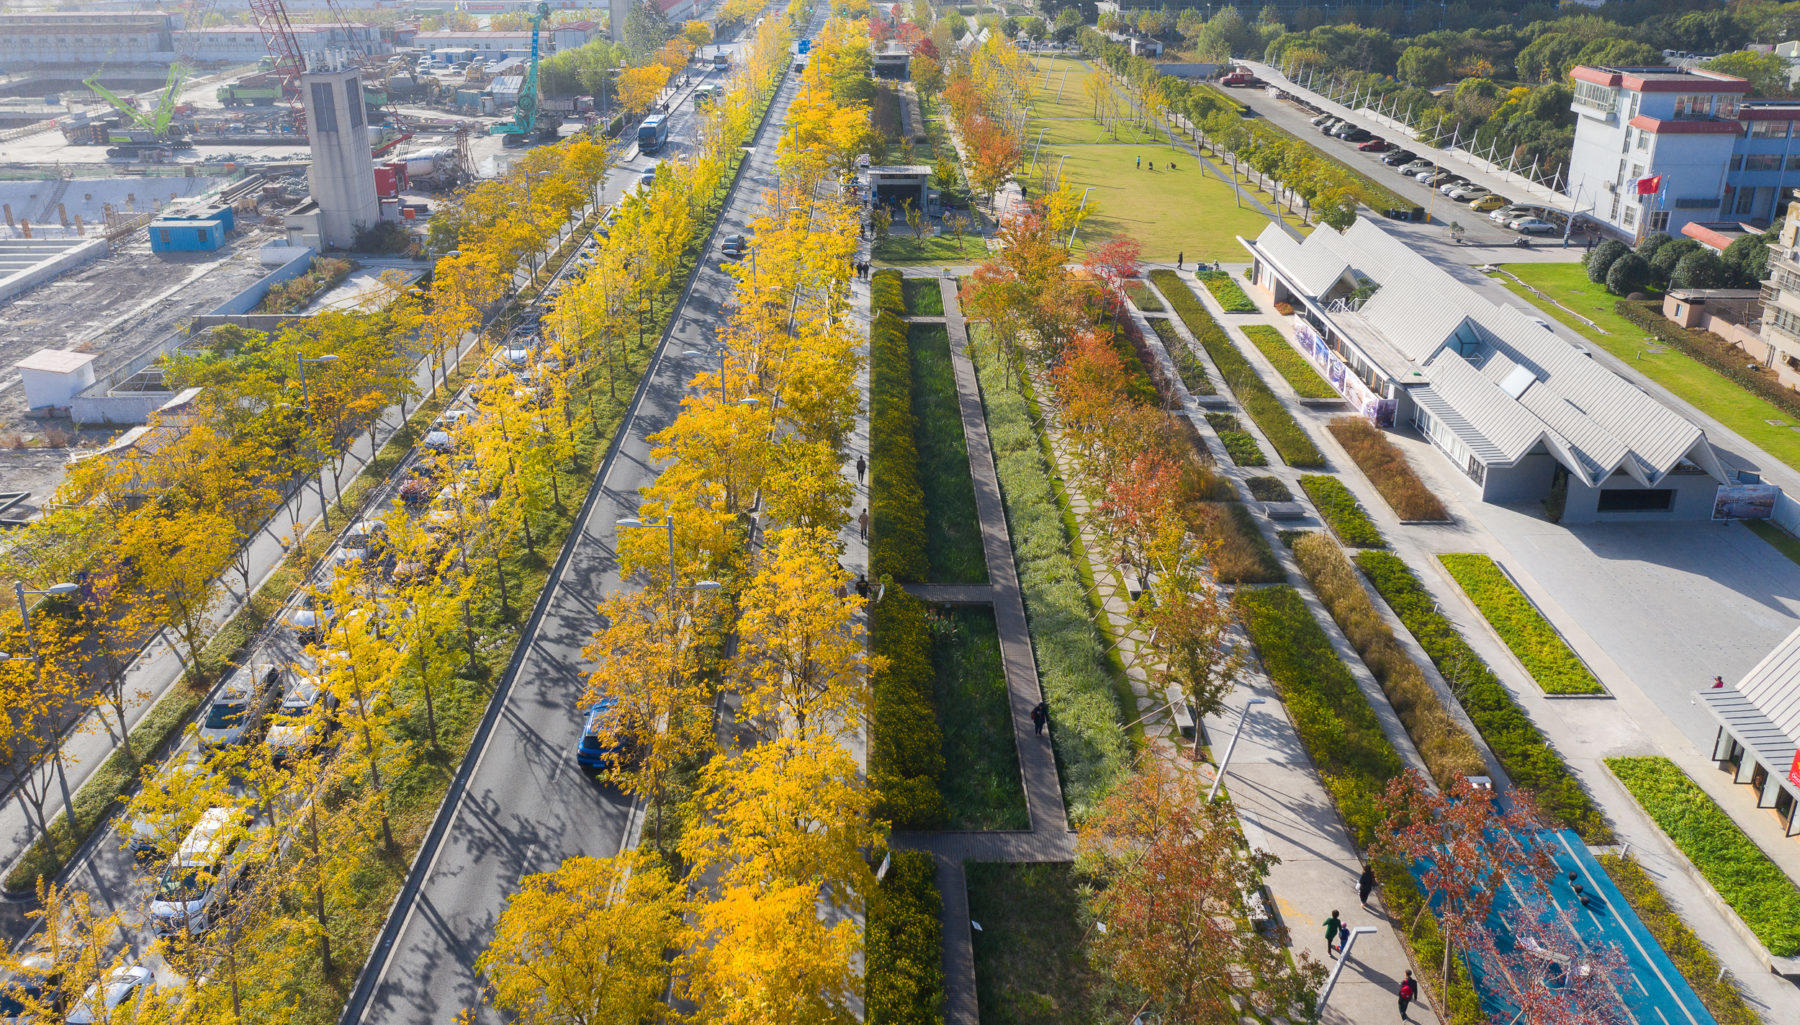 This old airport in Shanghai got transformed into an impressive park